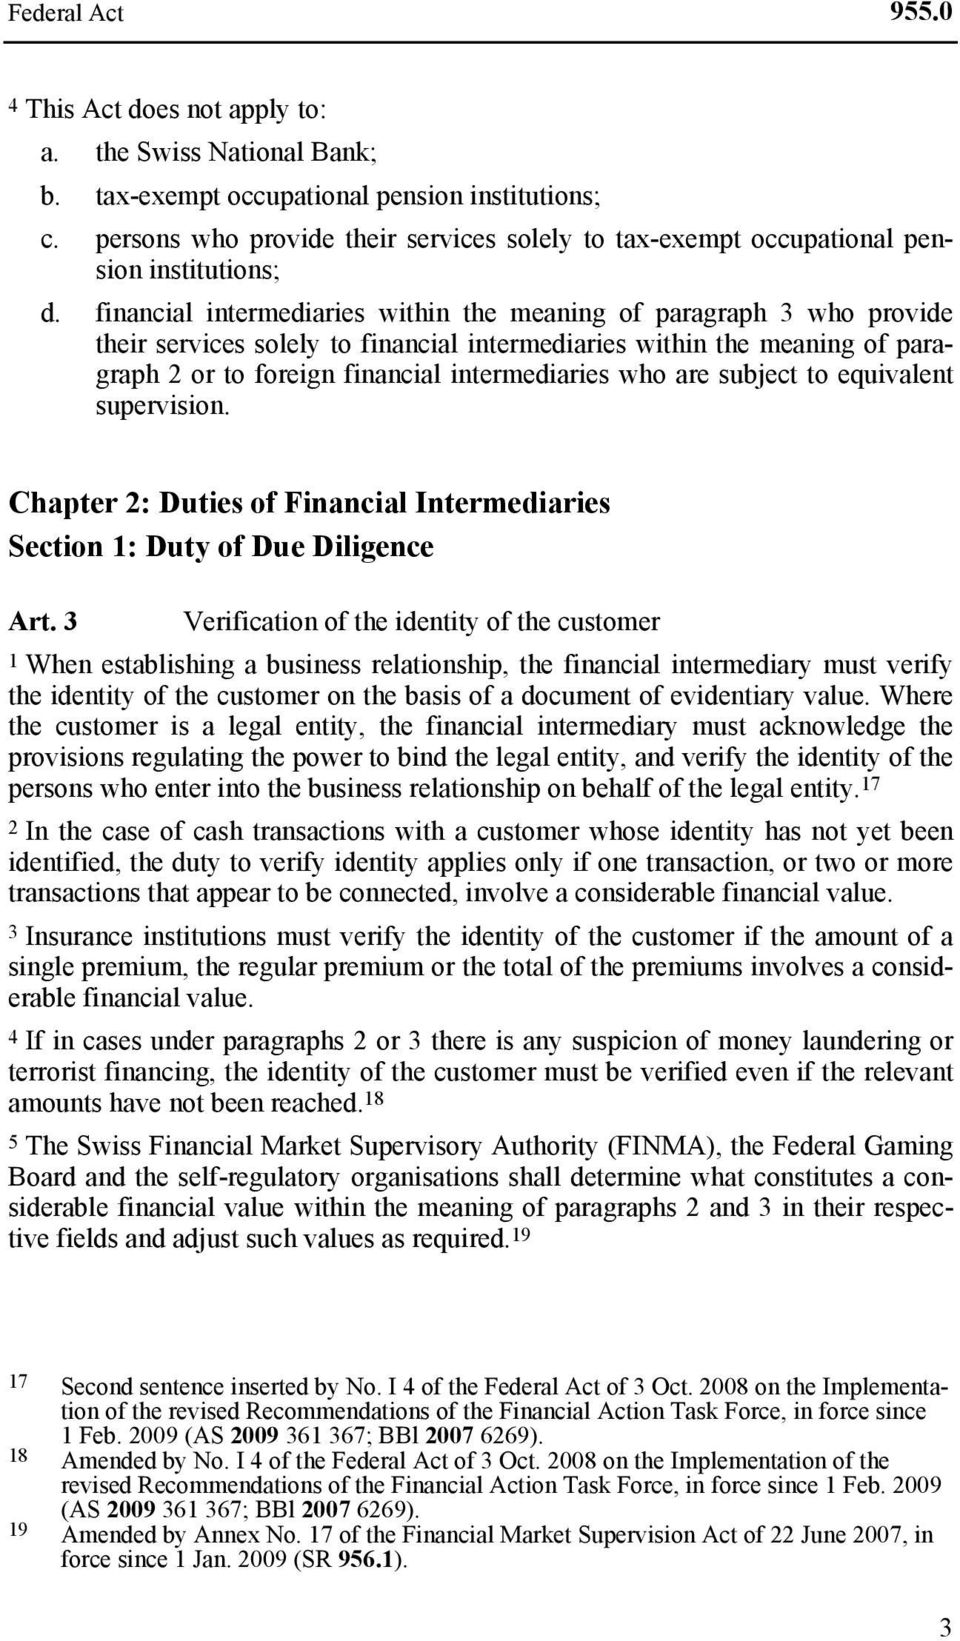 financial intermediaries within the meaning of paragraph 3 who provide their services solely to financial intermediaries within the meaning of paragraph 2 or to foreign financial intermediaries who